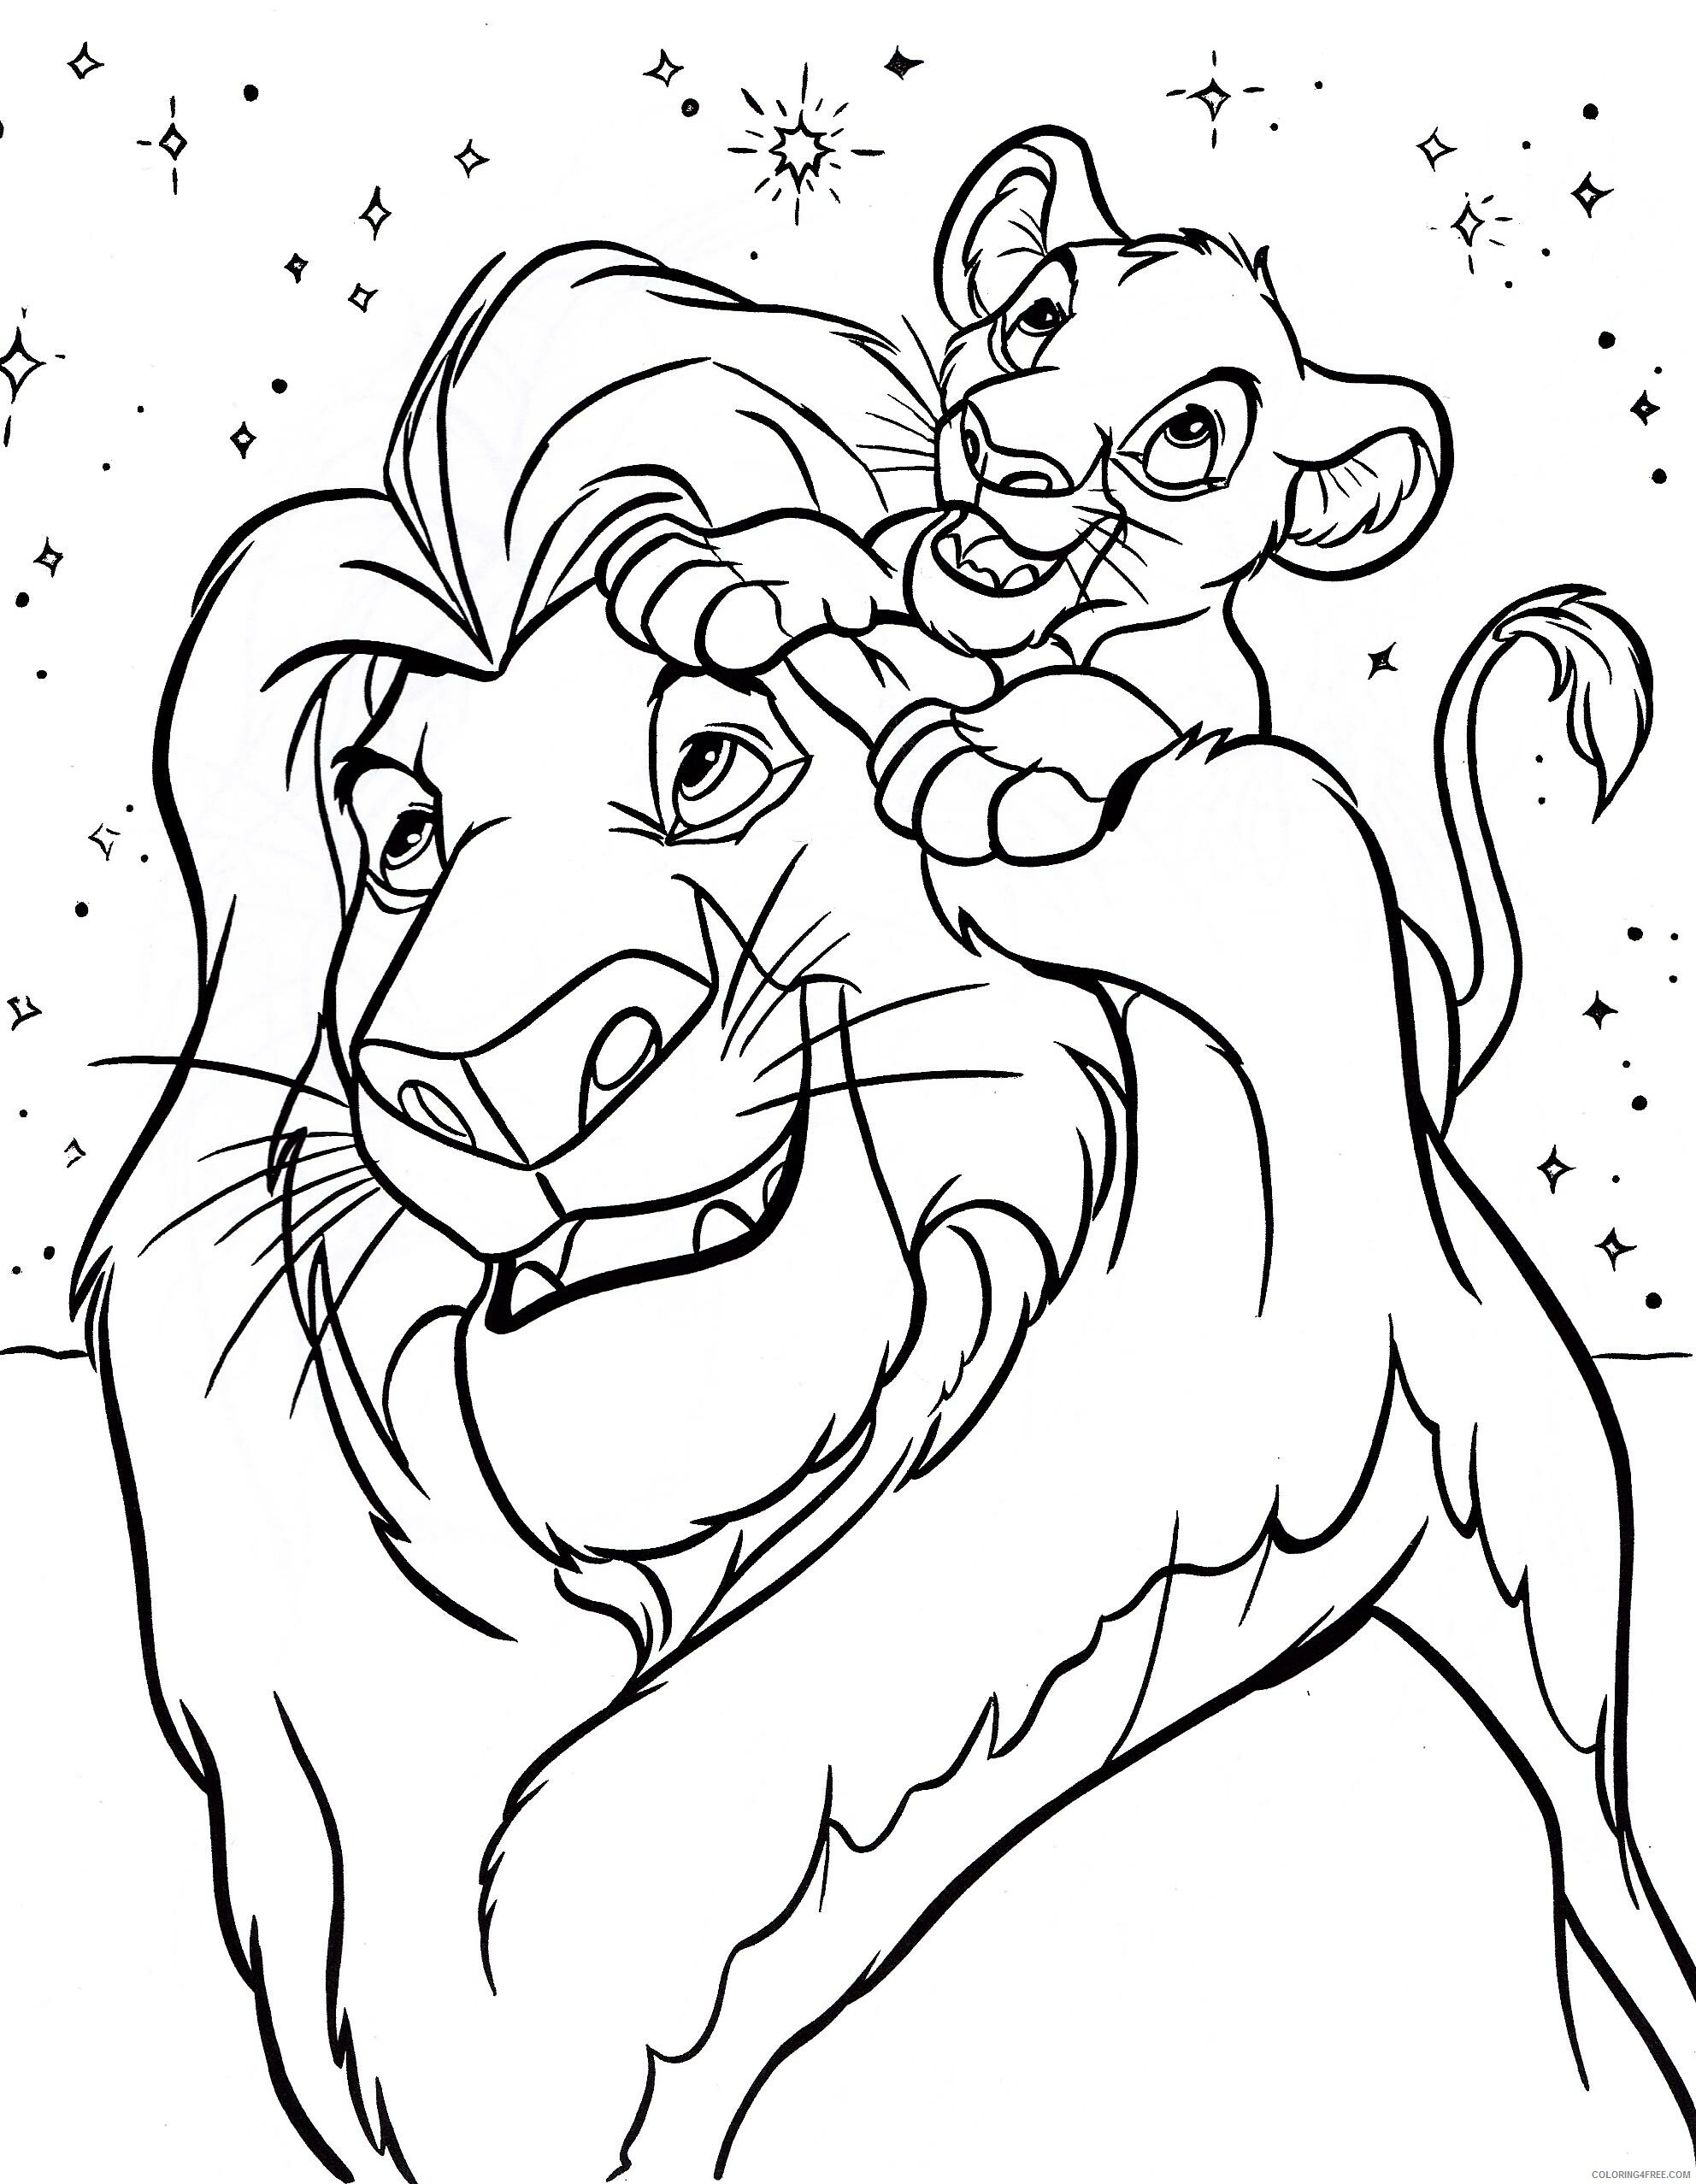 The Lion King Coloring Pages TV Film Disney Lion King Printable 2020 09131 Coloring4free